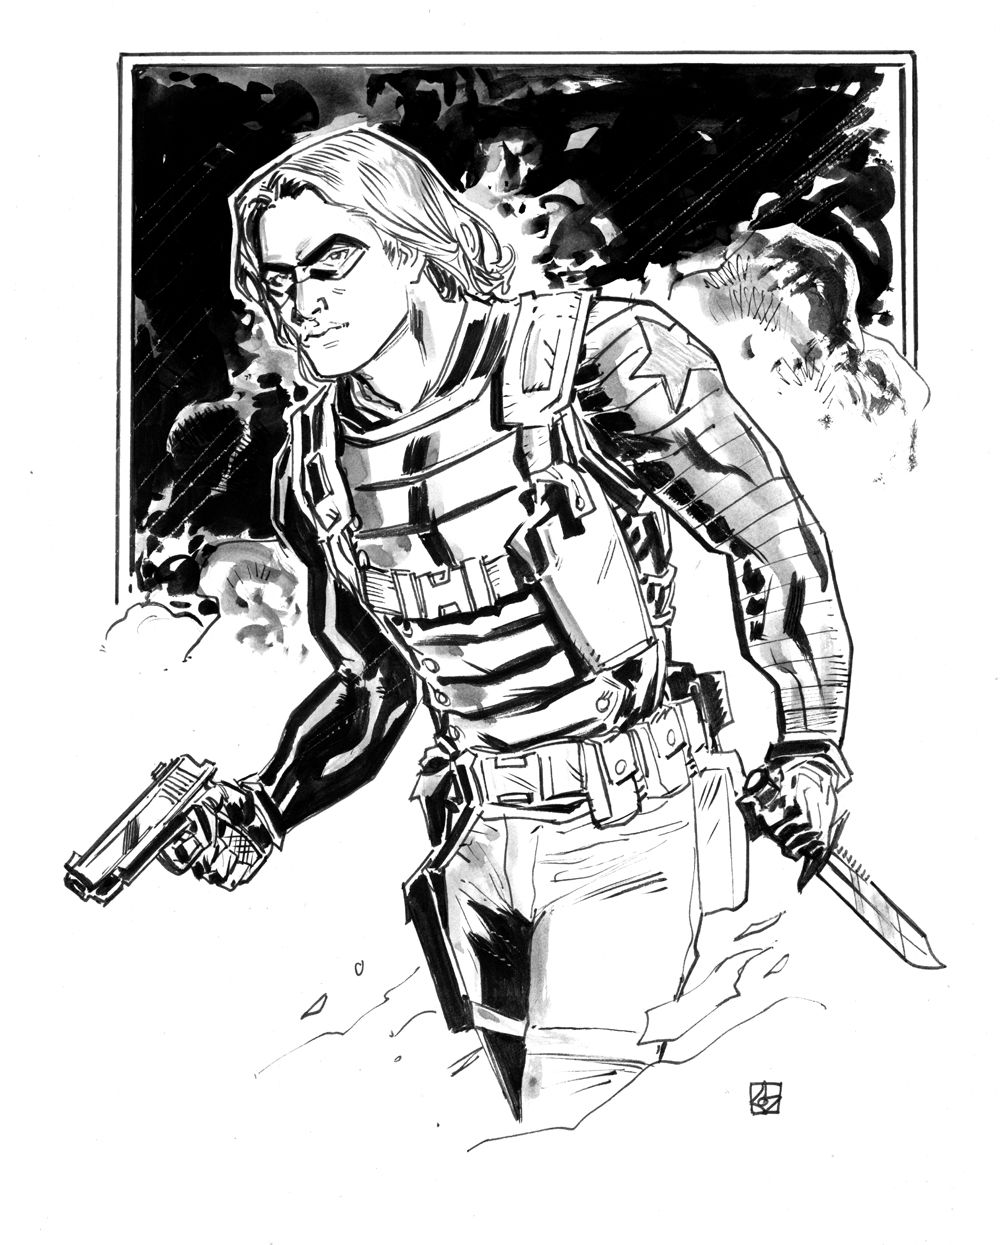 Bucky coloring pages ~ Bucky Barnes, the Winter Soldier by deankotz on DeviantArt ...